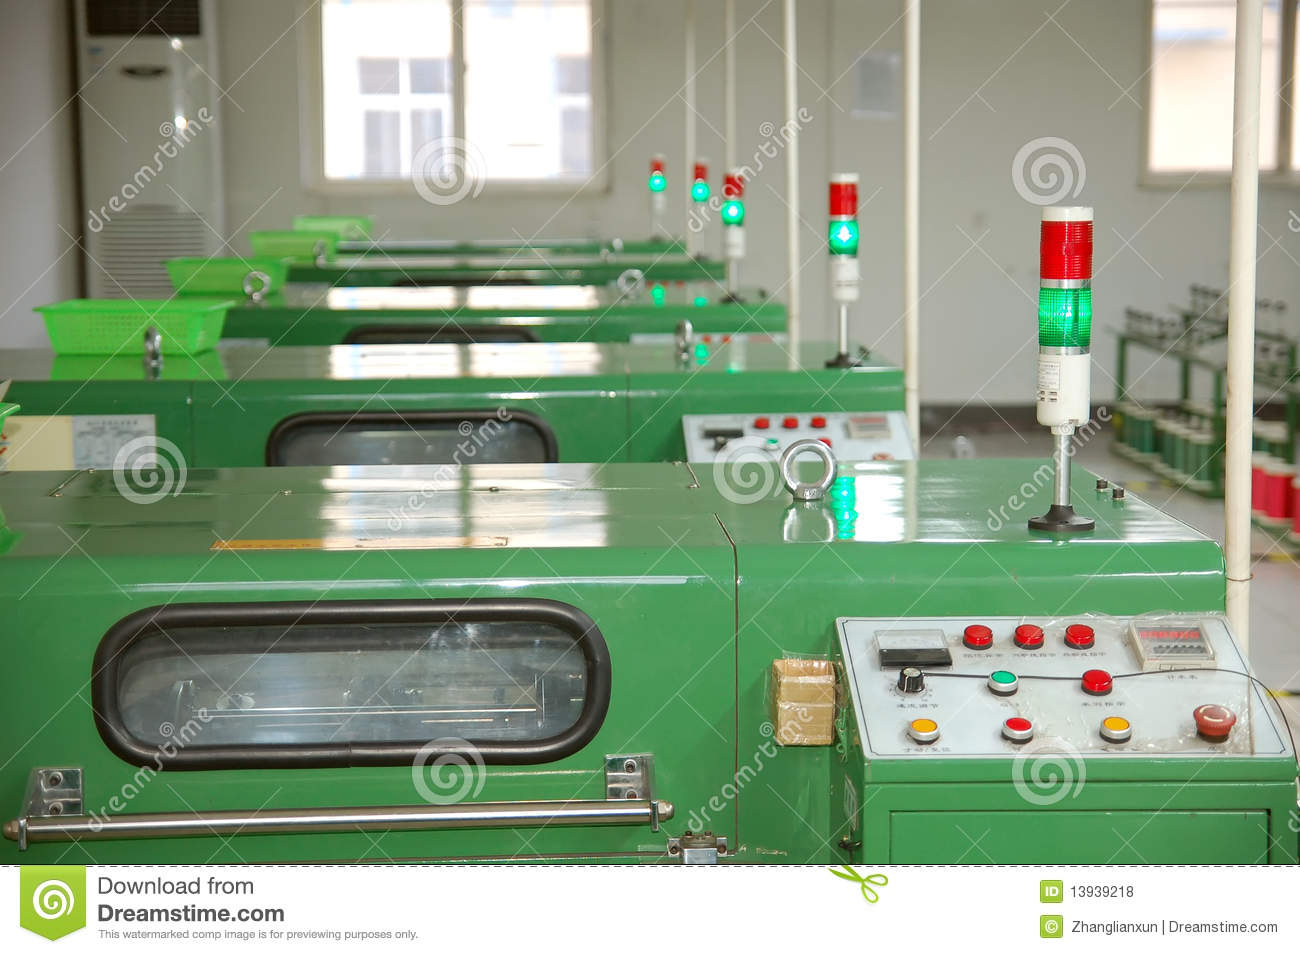 Dign Electronics Factory Equipment Stock Photo Cartoondealer